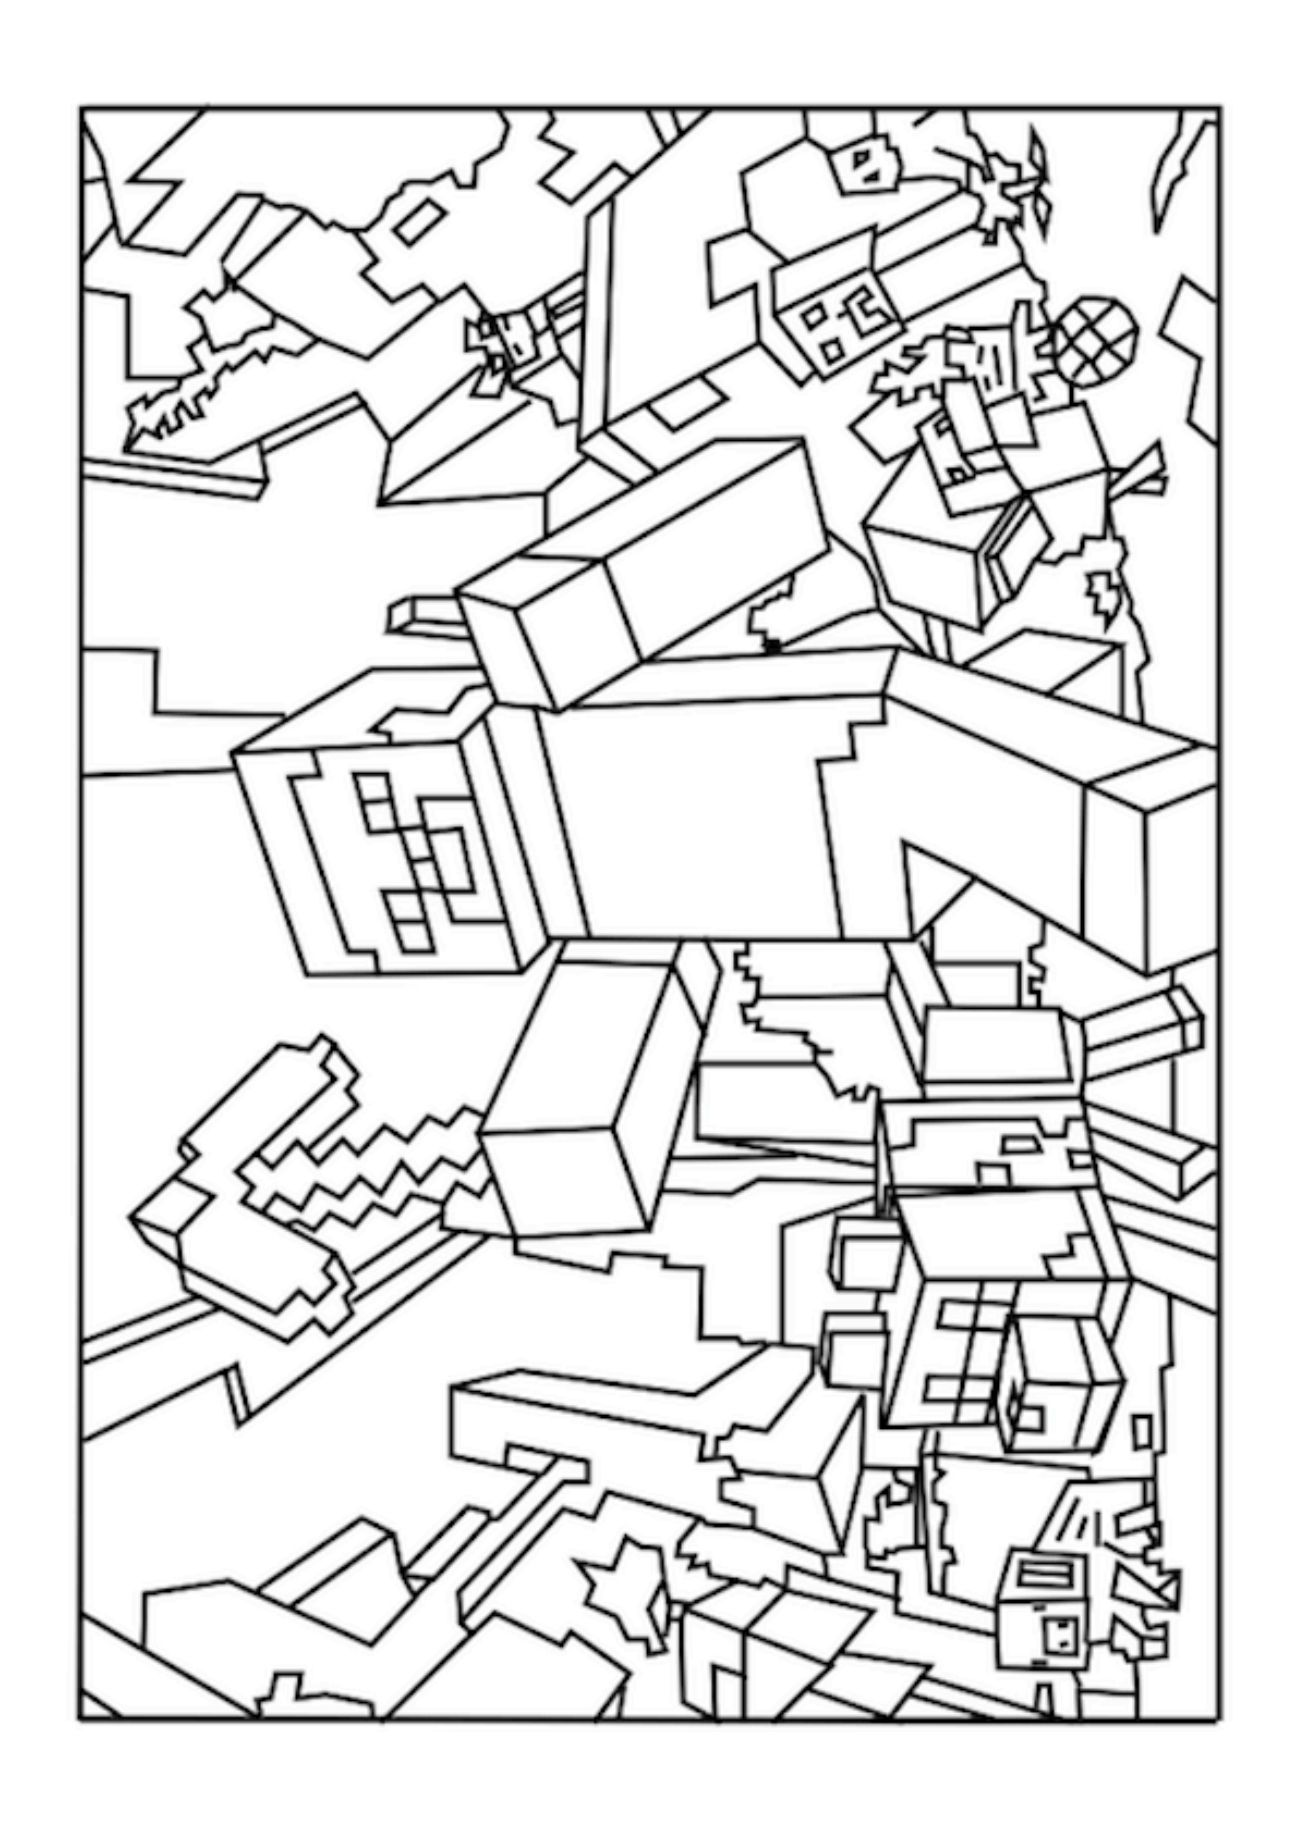 minecraft colouring pages free minecraft free to color for kids minecraft kids coloring pages colouring minecraft free